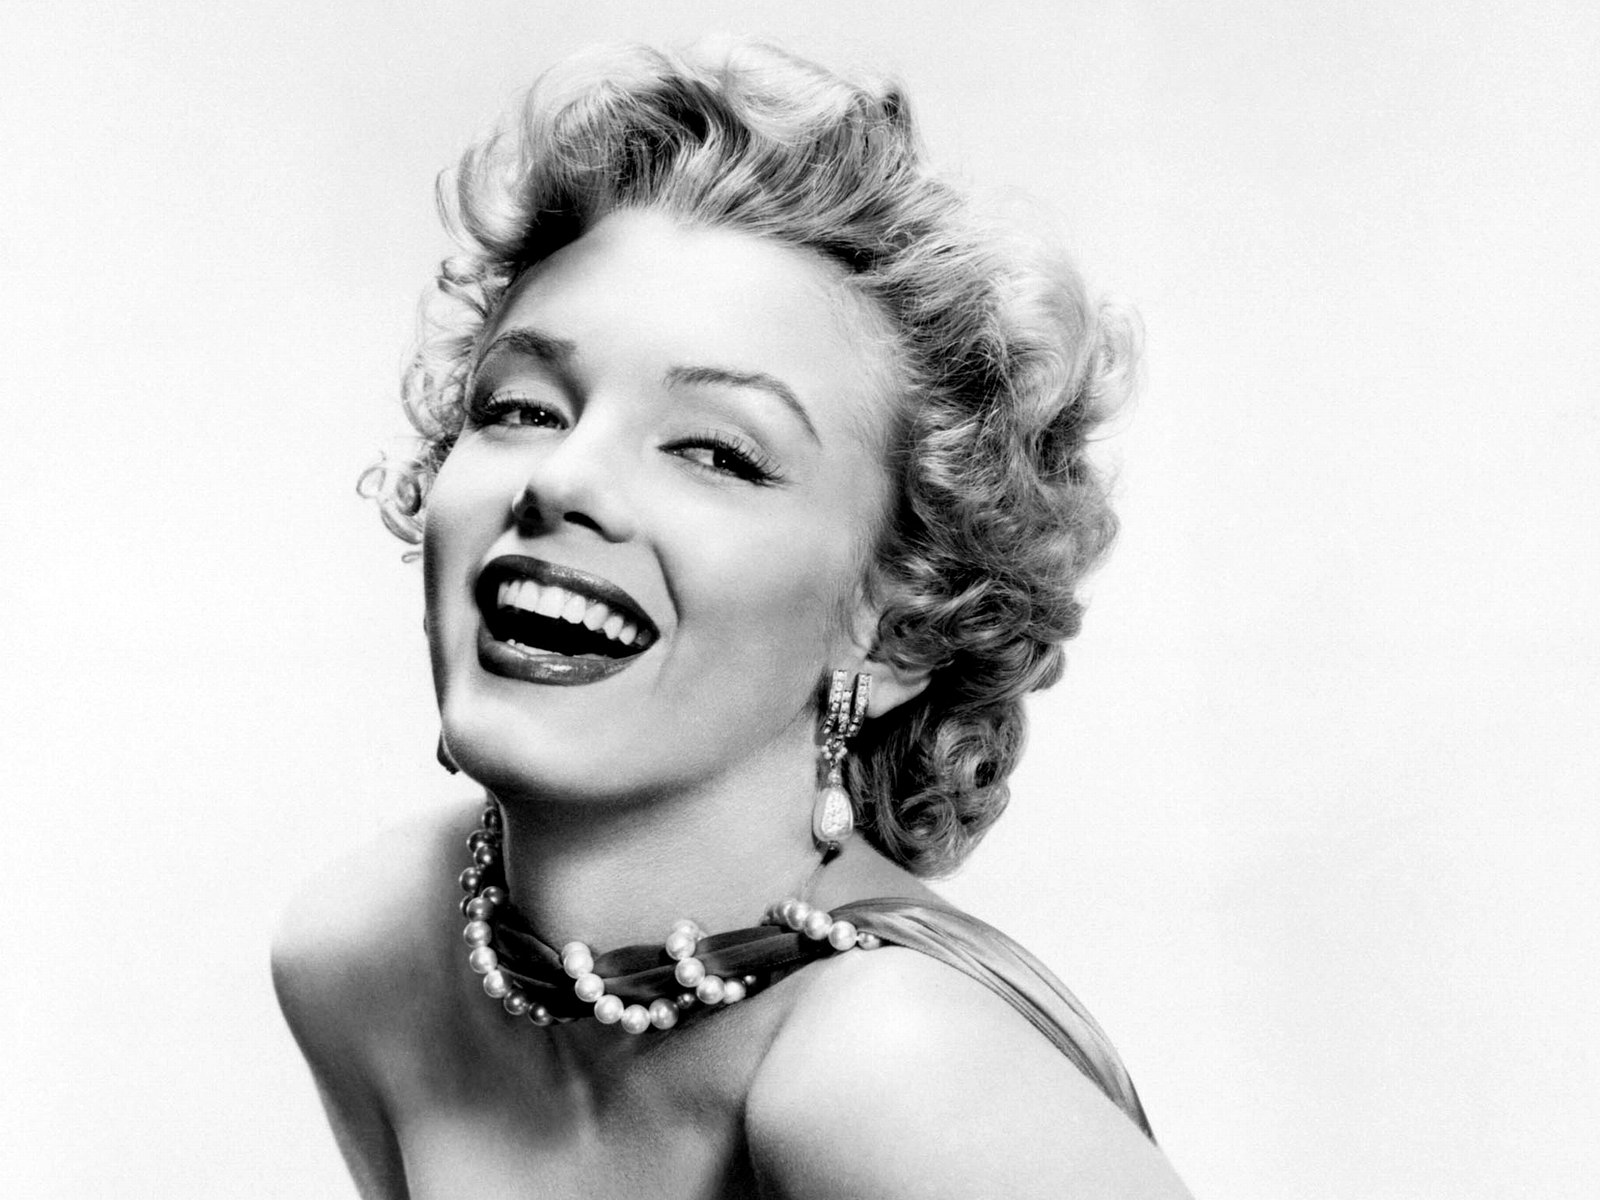 ... marilyn-monroe-new-black-and-white-wallpaper_1600x1200 02 ...